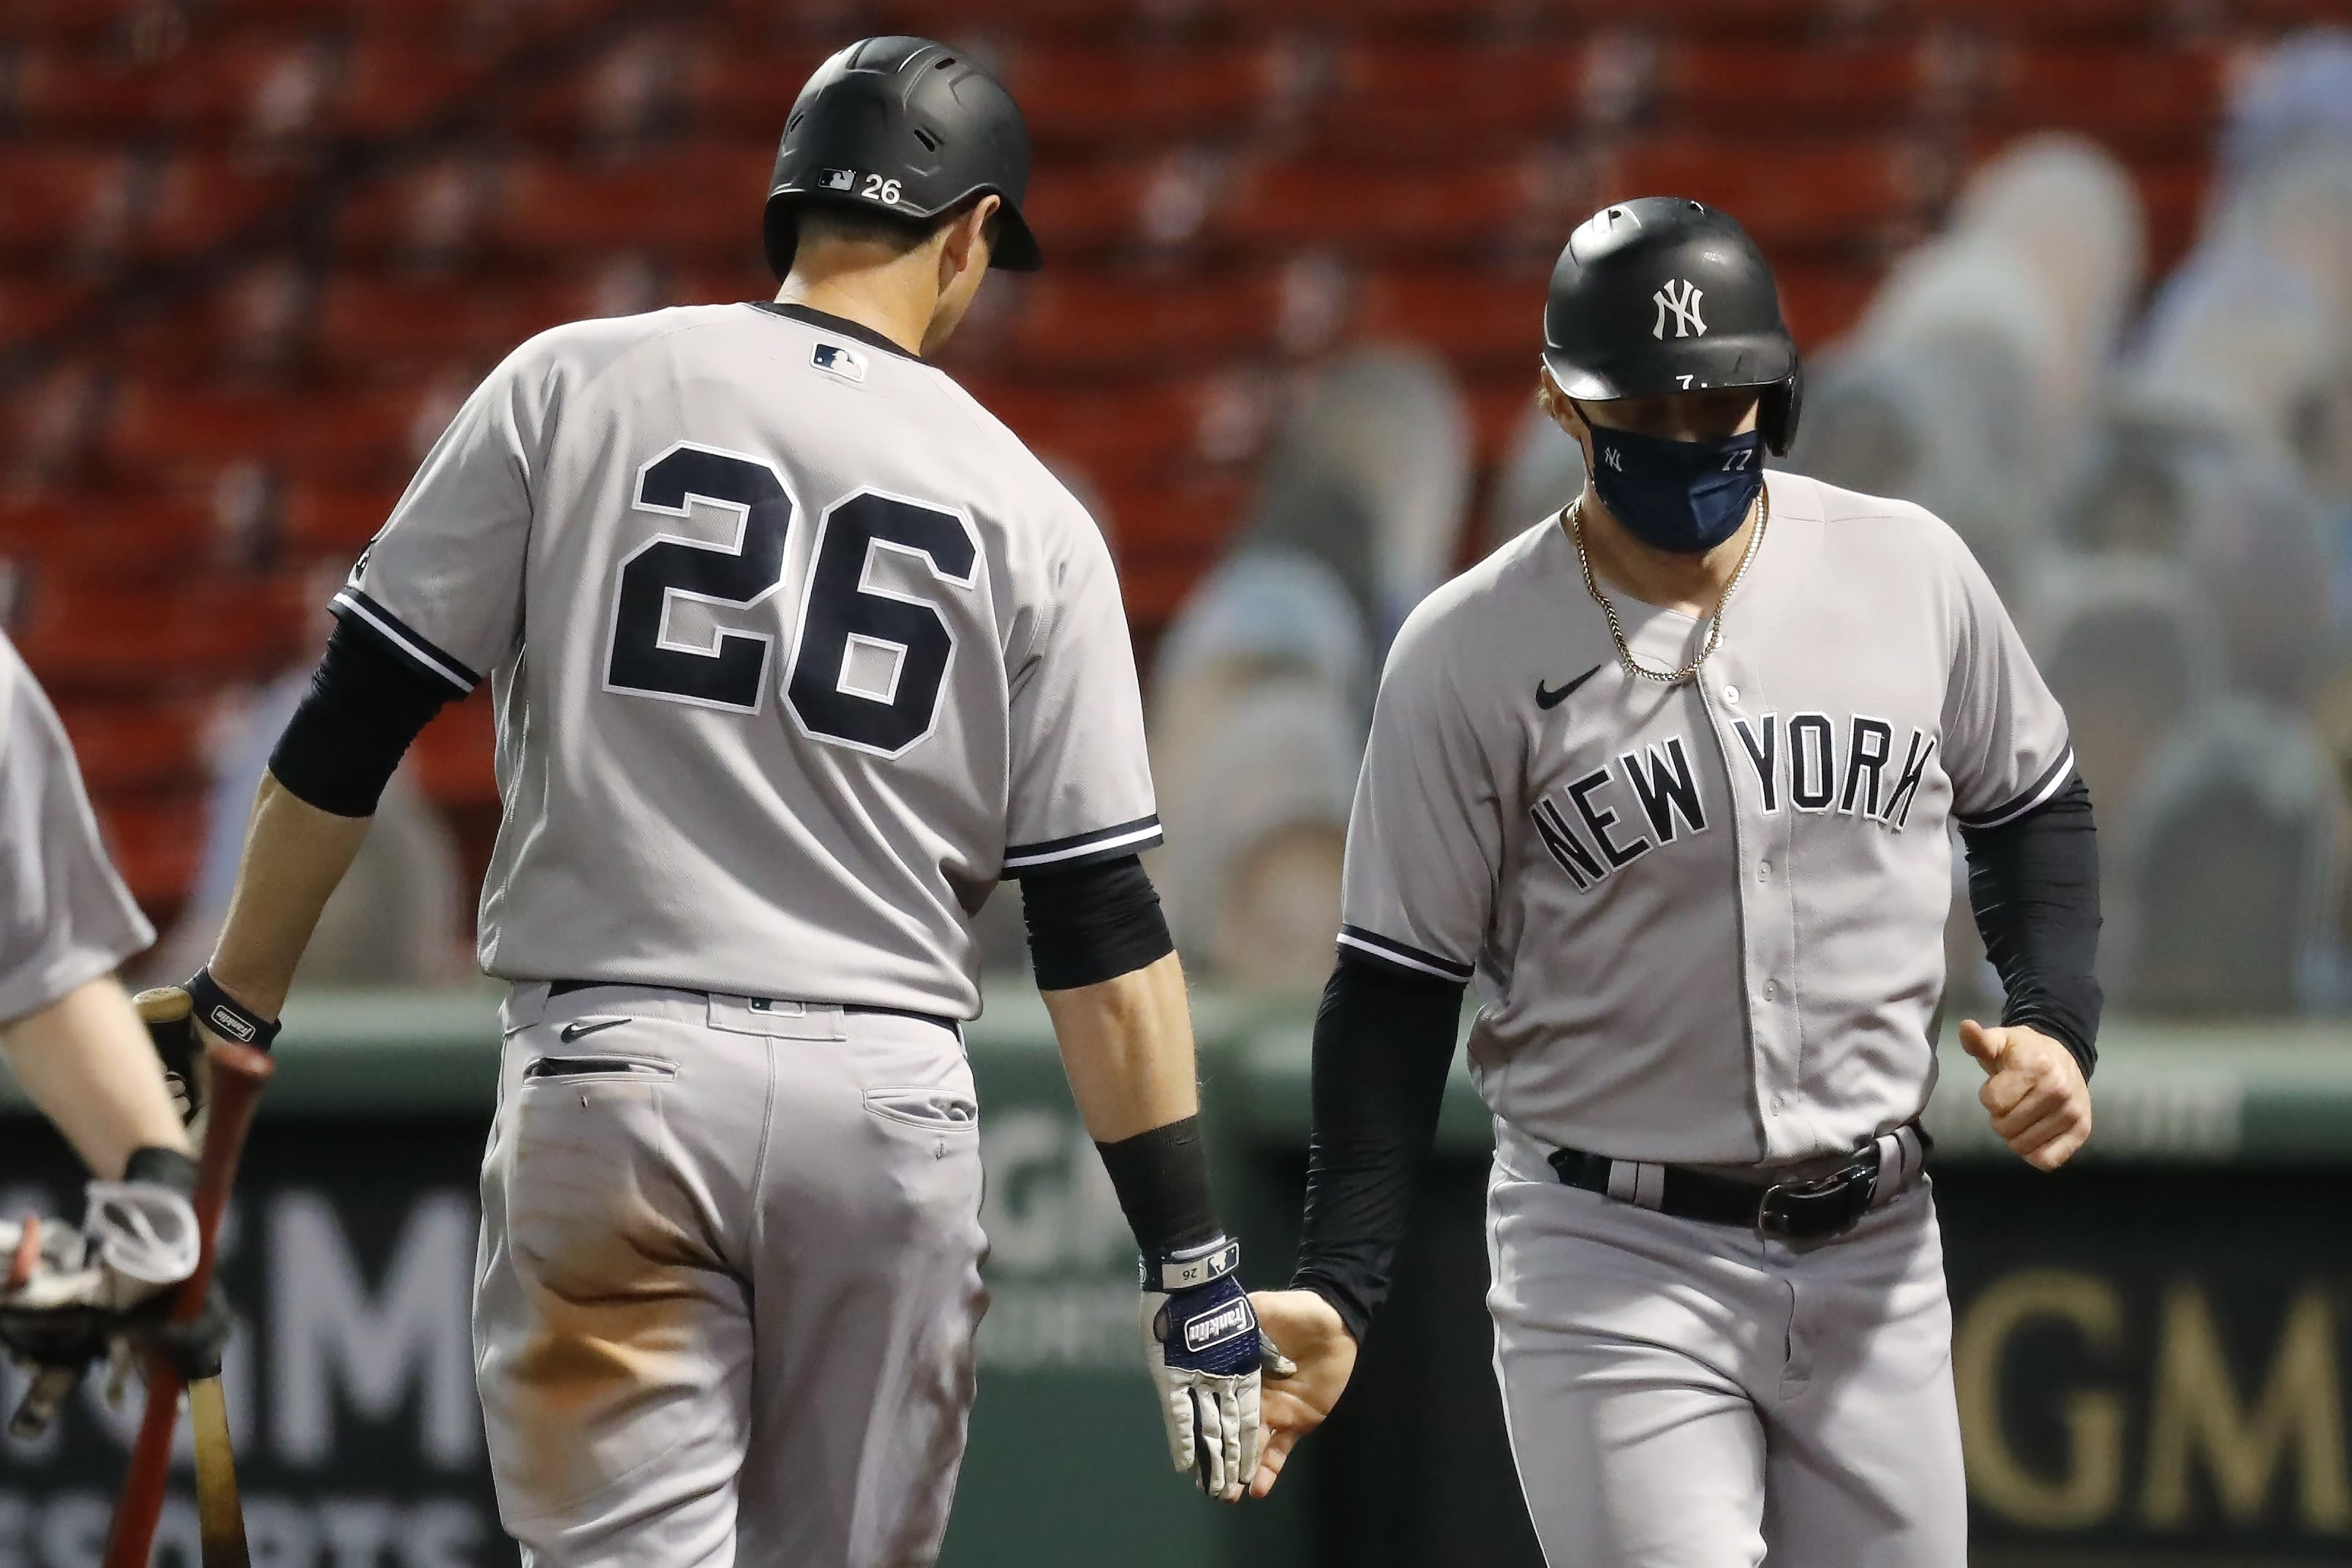 New York Yankees' Clint Frazier celebrates with DJ LeMahieu (26) after scoring on a single by Kyle Higashioka during the fourth inning of a baseball game against the Boston Red Sox, Saturday, Sept. 19, 2020, in Boston. (AP Photo/Michael Dwyer)